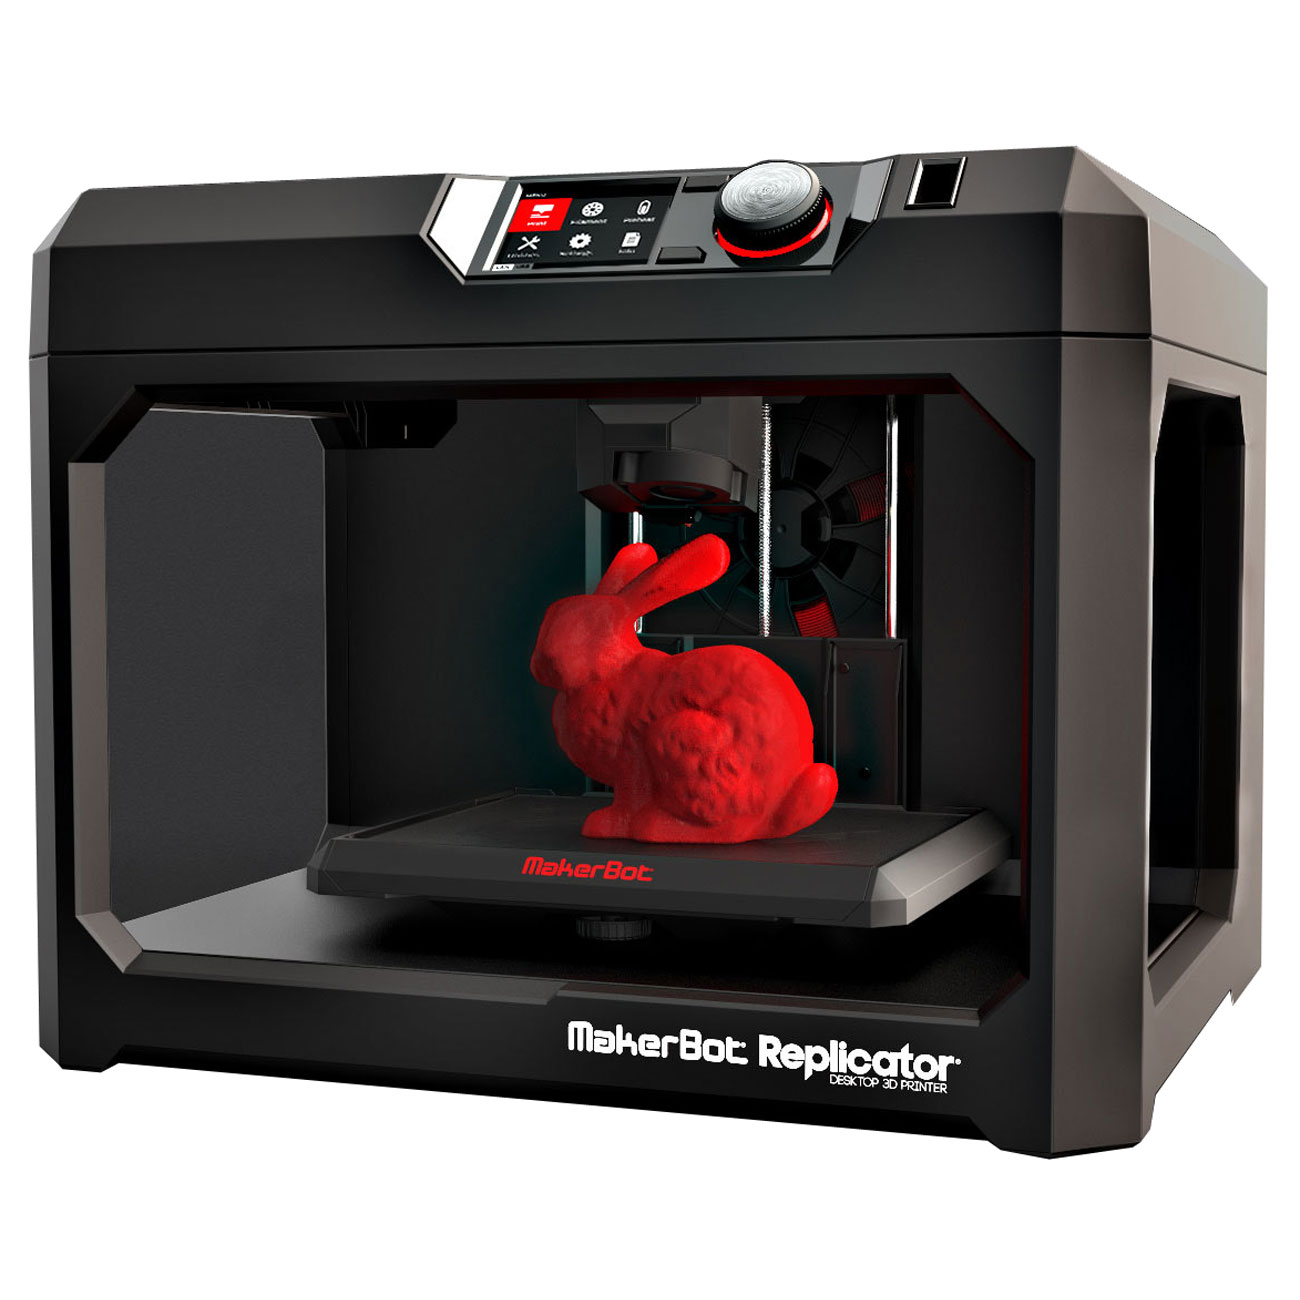 makerbot replicator 5th imprimante 3d makerbot sur. Black Bedroom Furniture Sets. Home Design Ideas